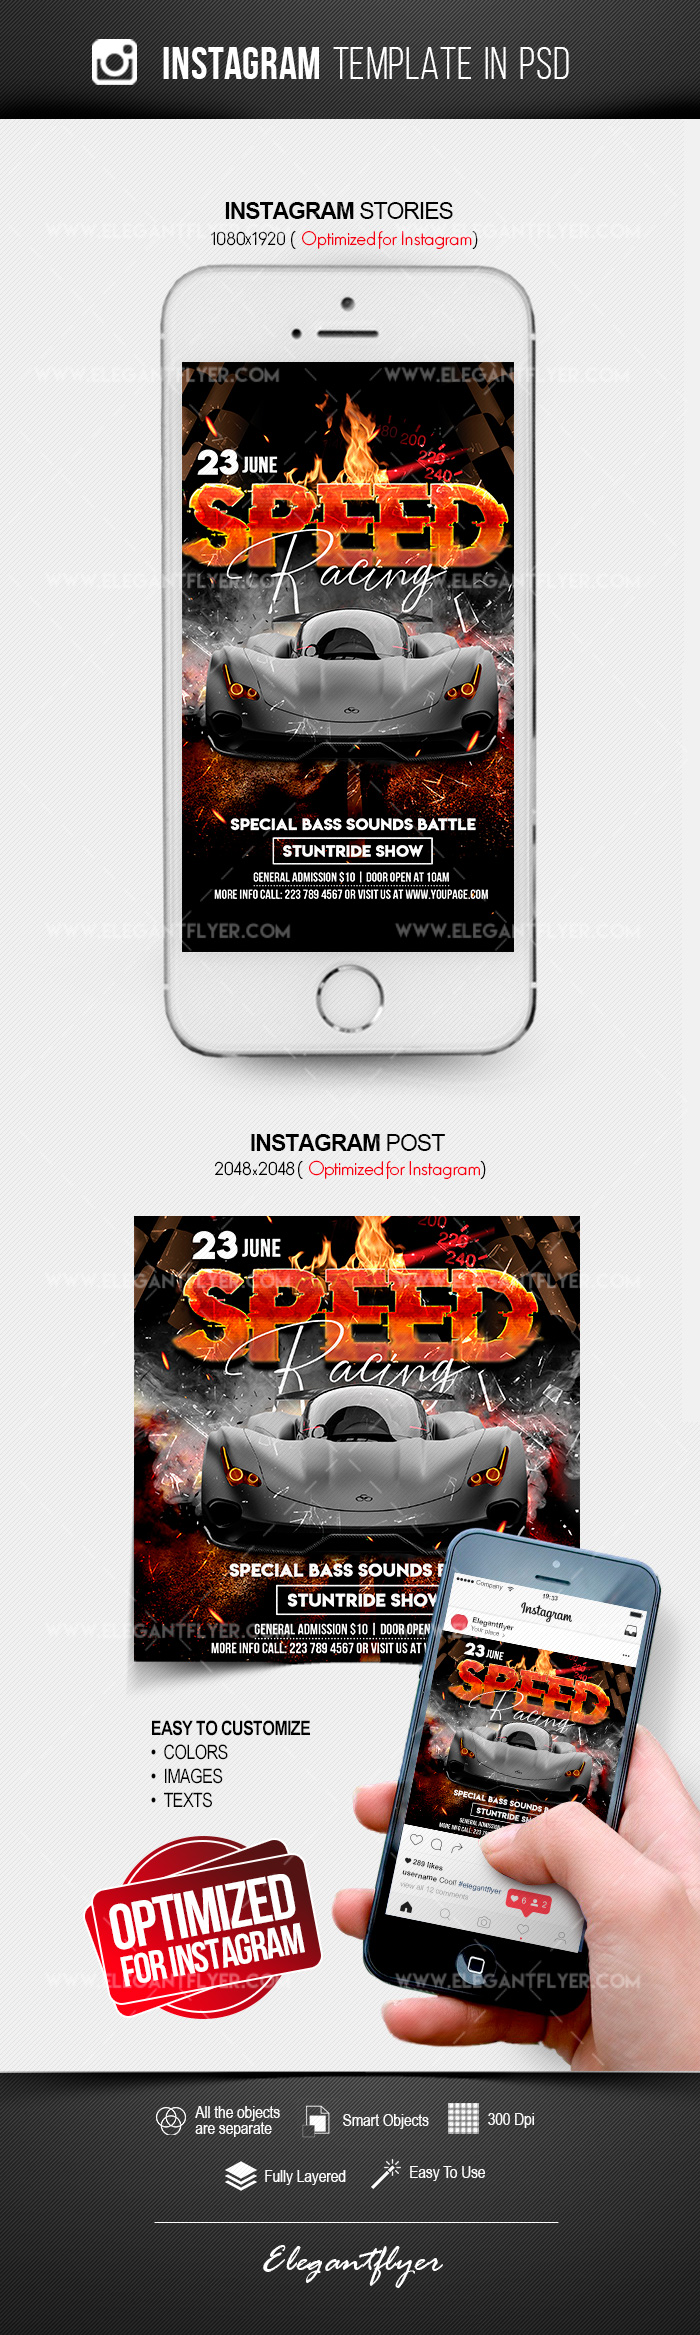 Speed Racing – Instagram Stories Template in PSD + Post Templates